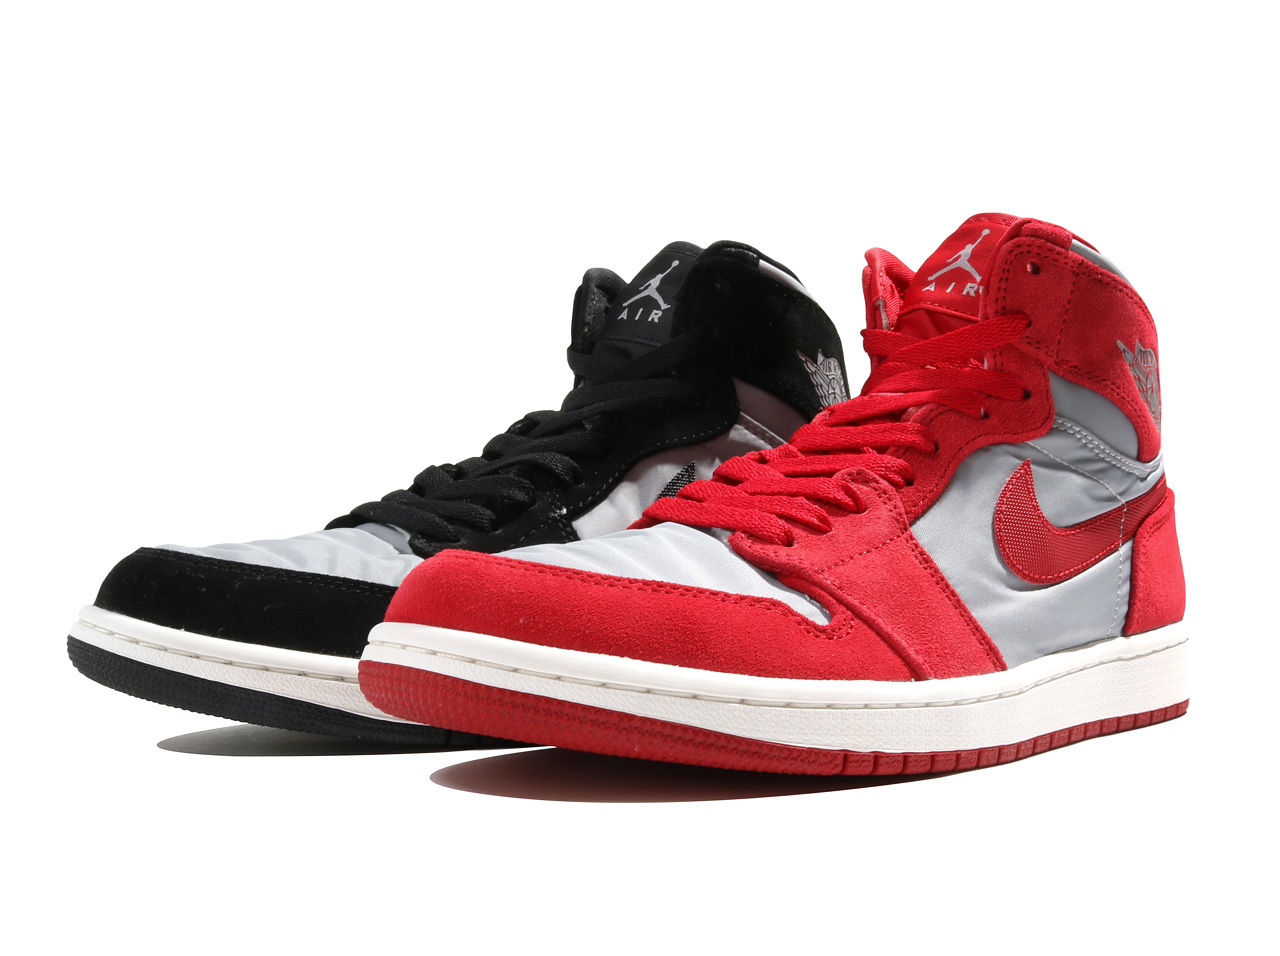 nike_air_jordan_1_retro_high_prem_aa3993_003_601